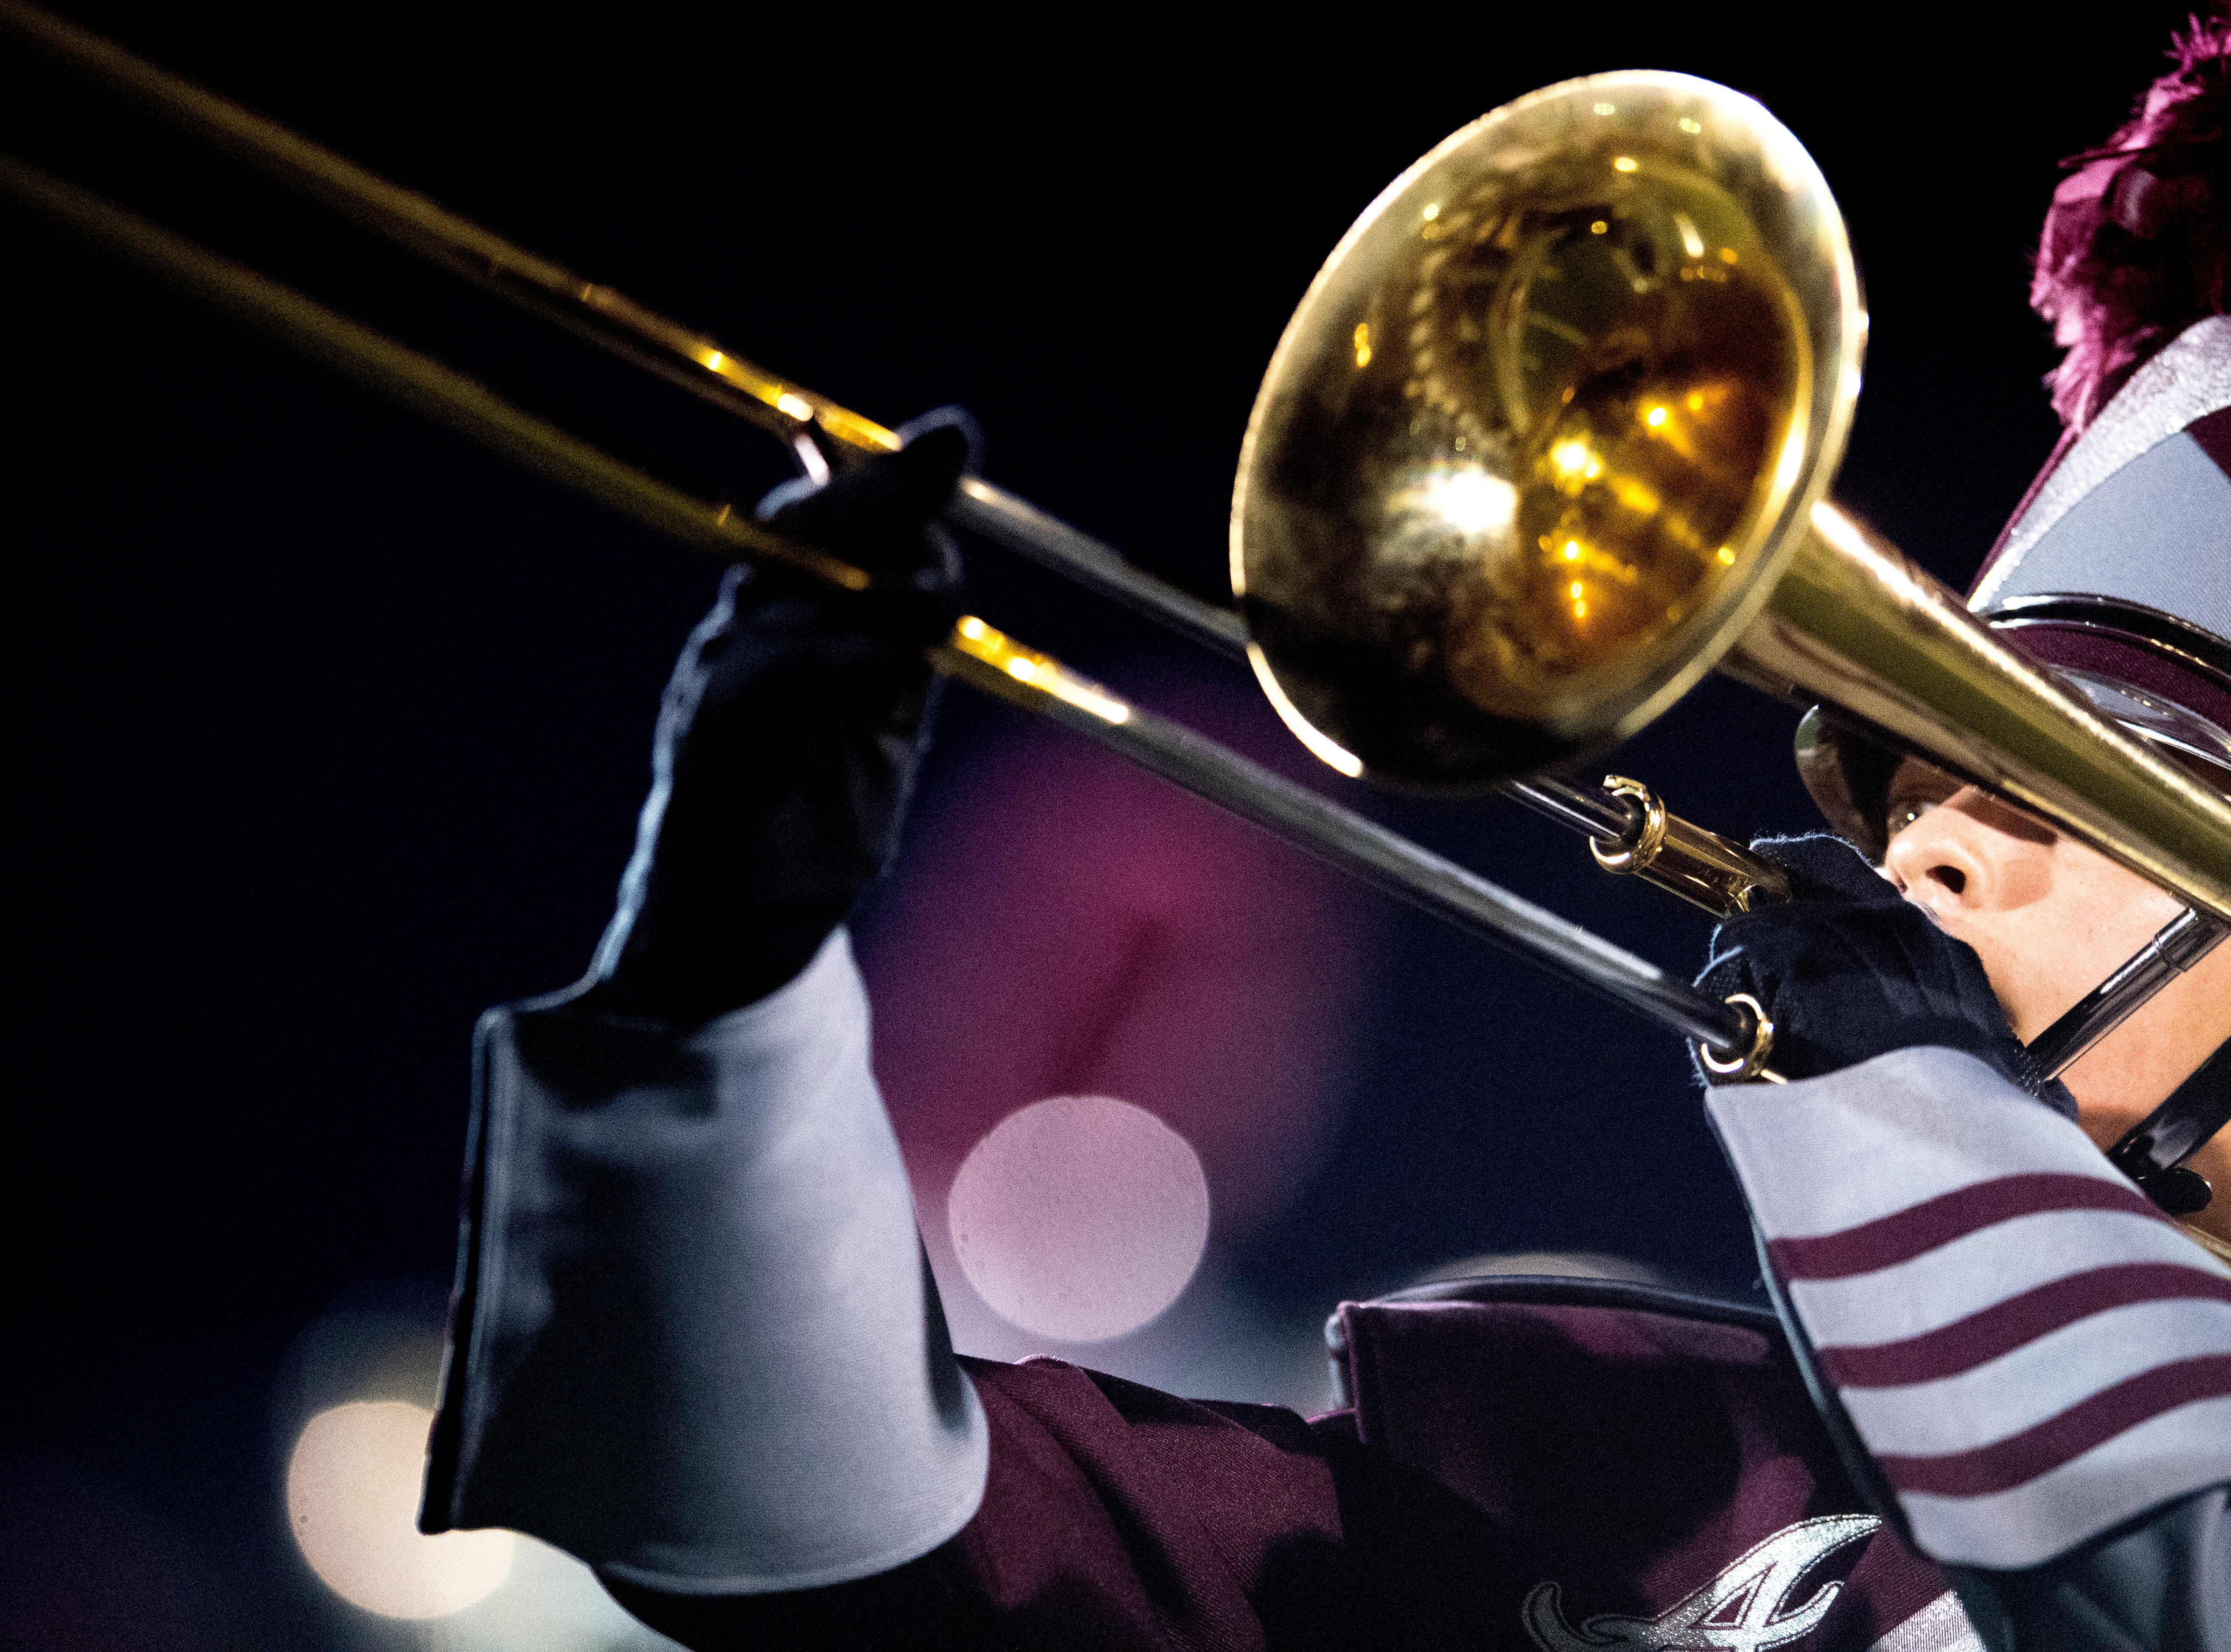 The Alcoa Marching Band performs during a football game between Alcoa and Northview at Alcoa High School in Alcoa, Tennessee on Friday, September 28, 2018. Alcoa played in historic reproduction jerseys modeled after the former all-black Hall High School in Alcoa.